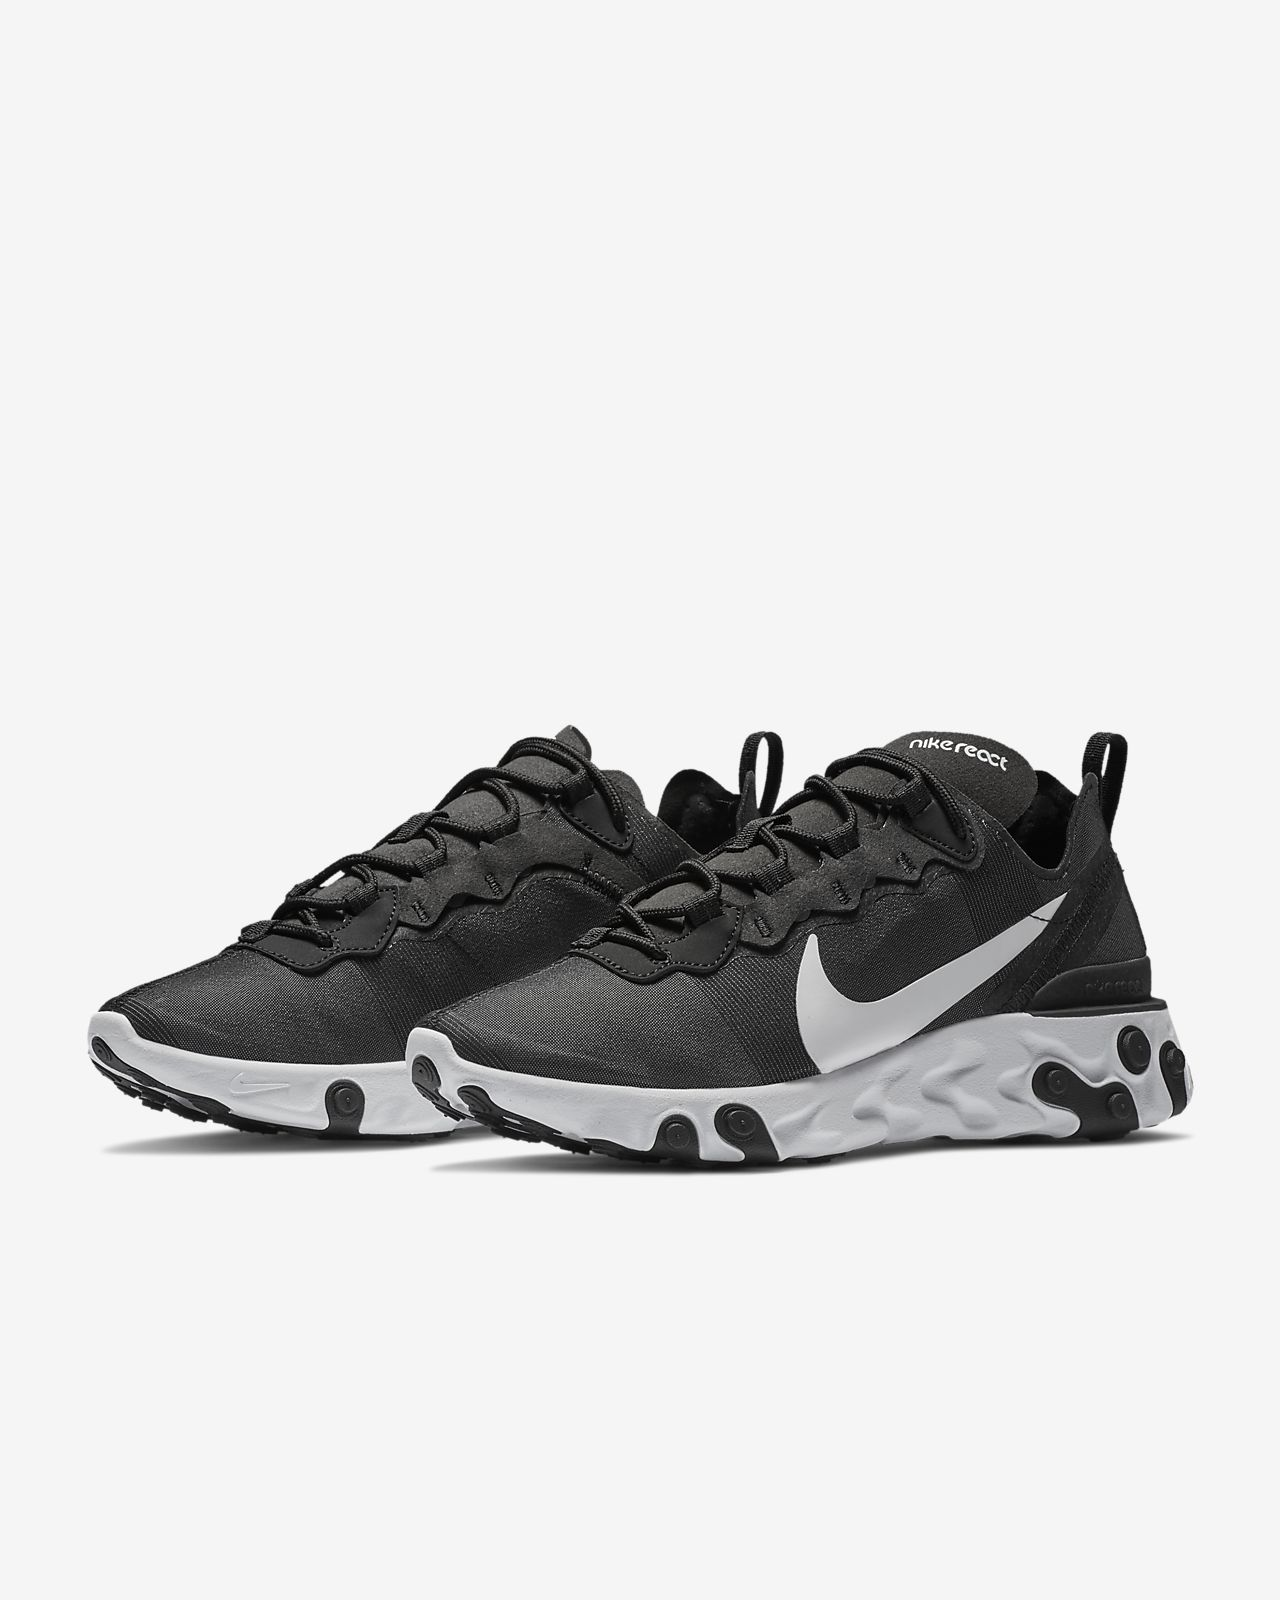 new product 6c00f 8a3f6 Nike React Element 55